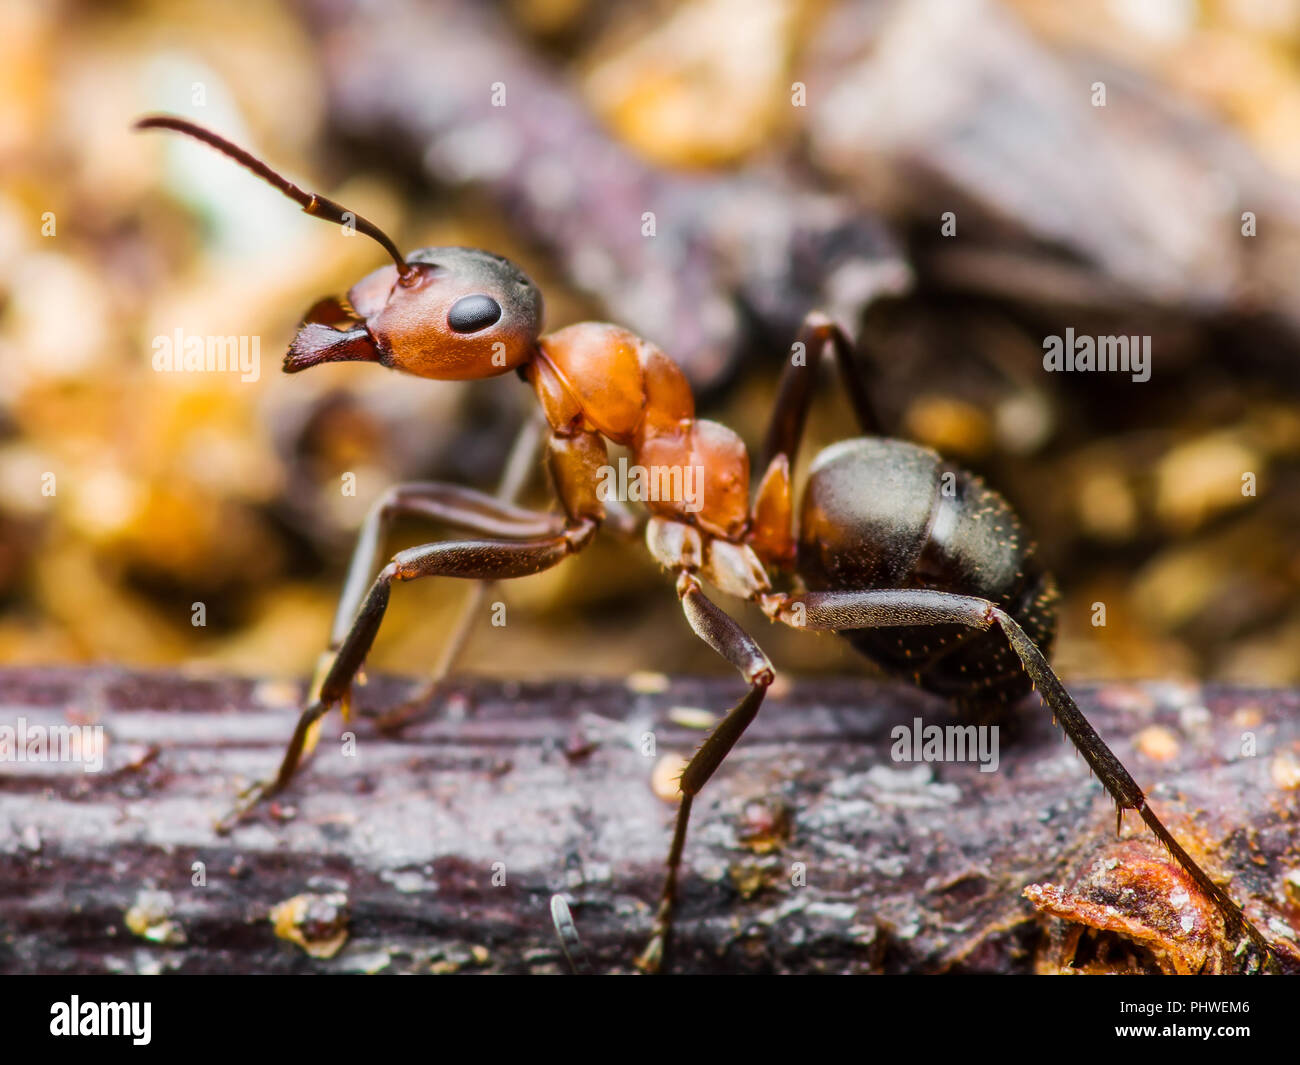 Red Ant Insect Macro - Stock Image